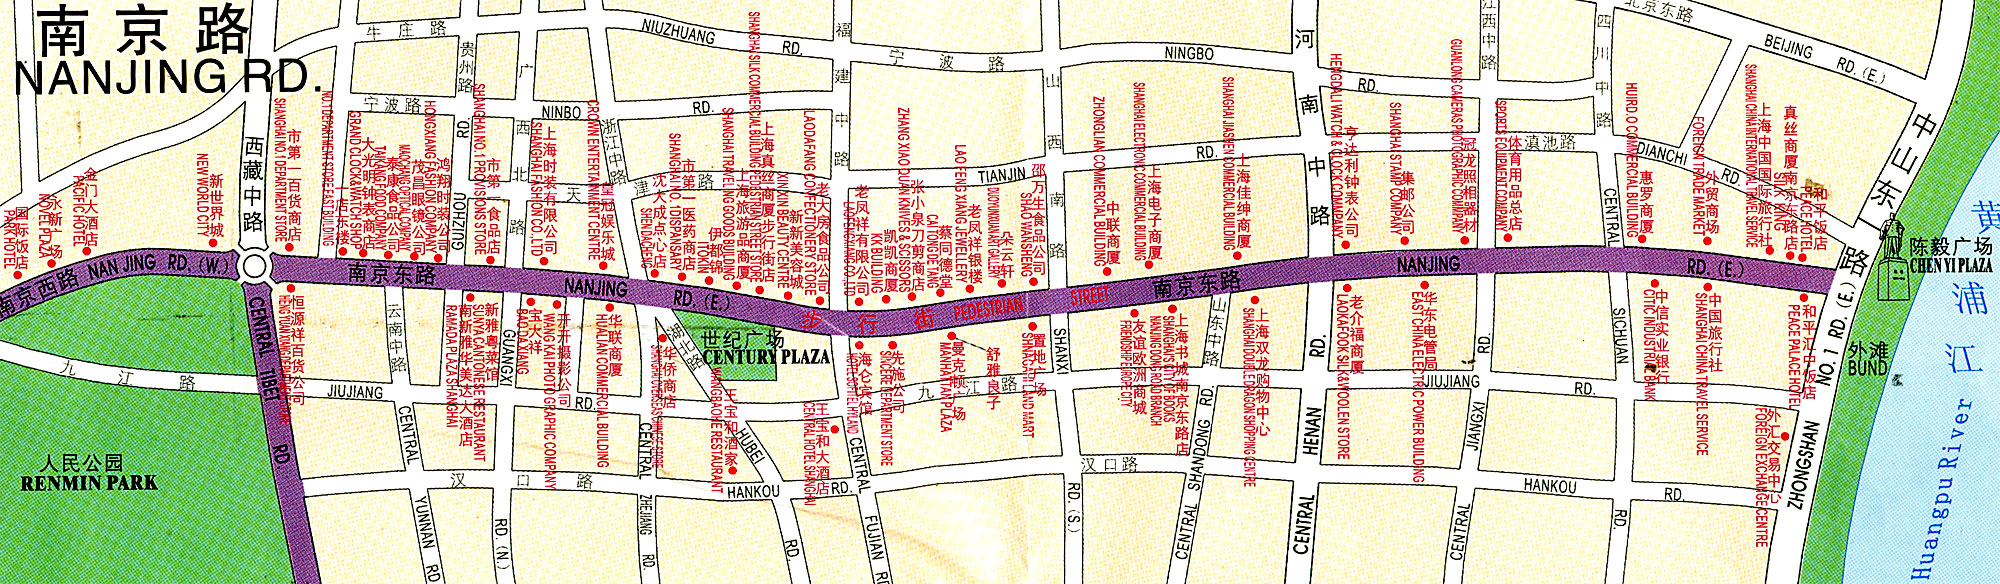 Nanjing Road In Shanghai Tourist Map Shanghai China Mappery